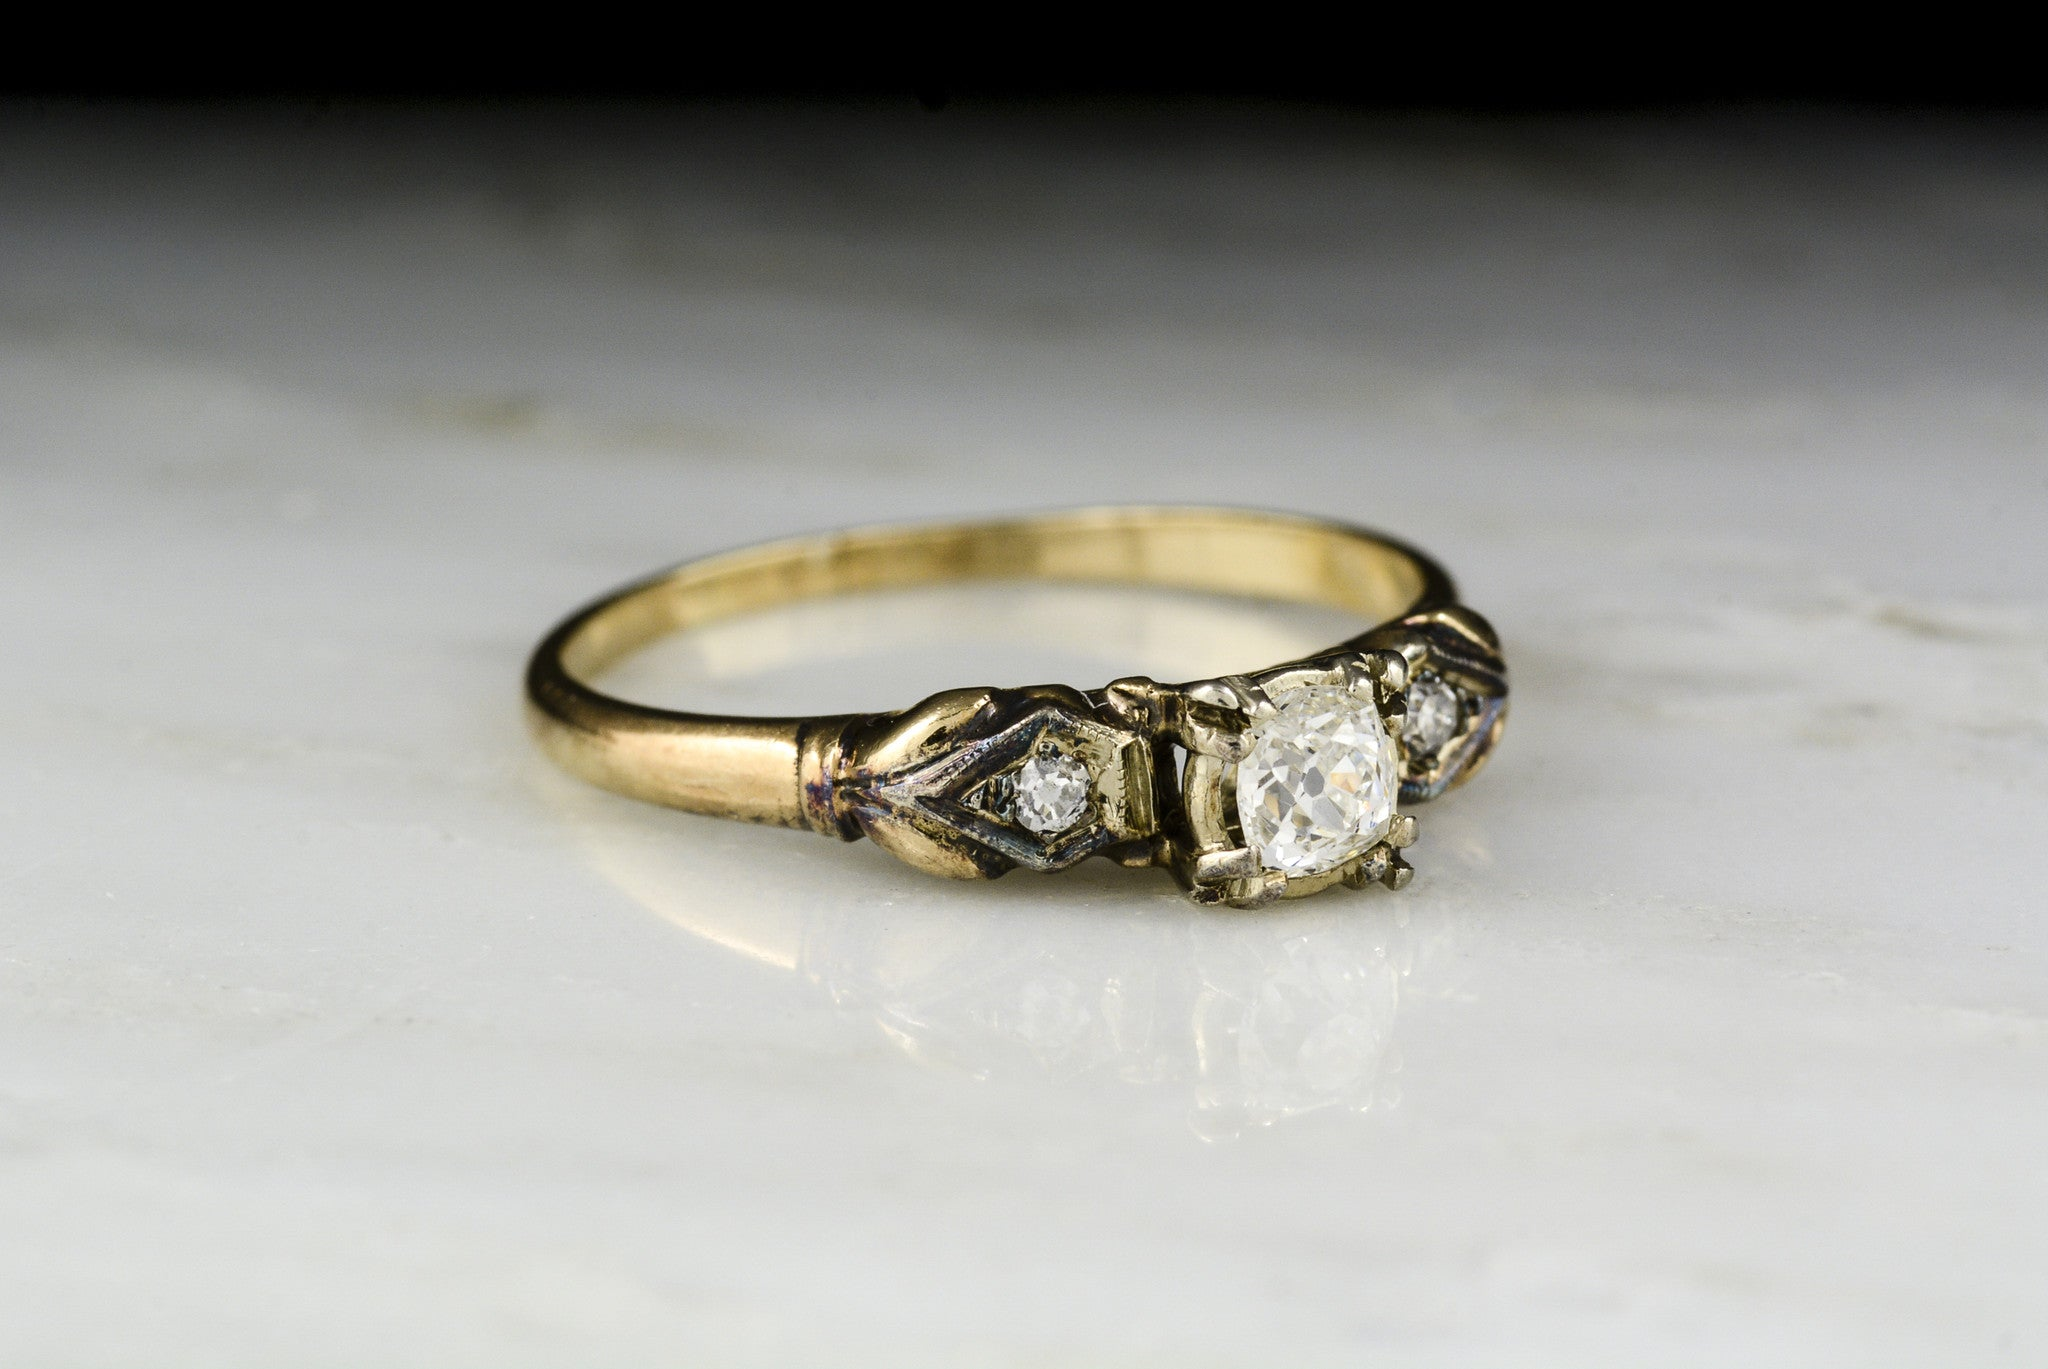 89e934fcbdb91 Vintage c. 1940 Retro/Victorian Revival Rose and White Gold Engagement Ring  with Old Mine Cut Diamond Center